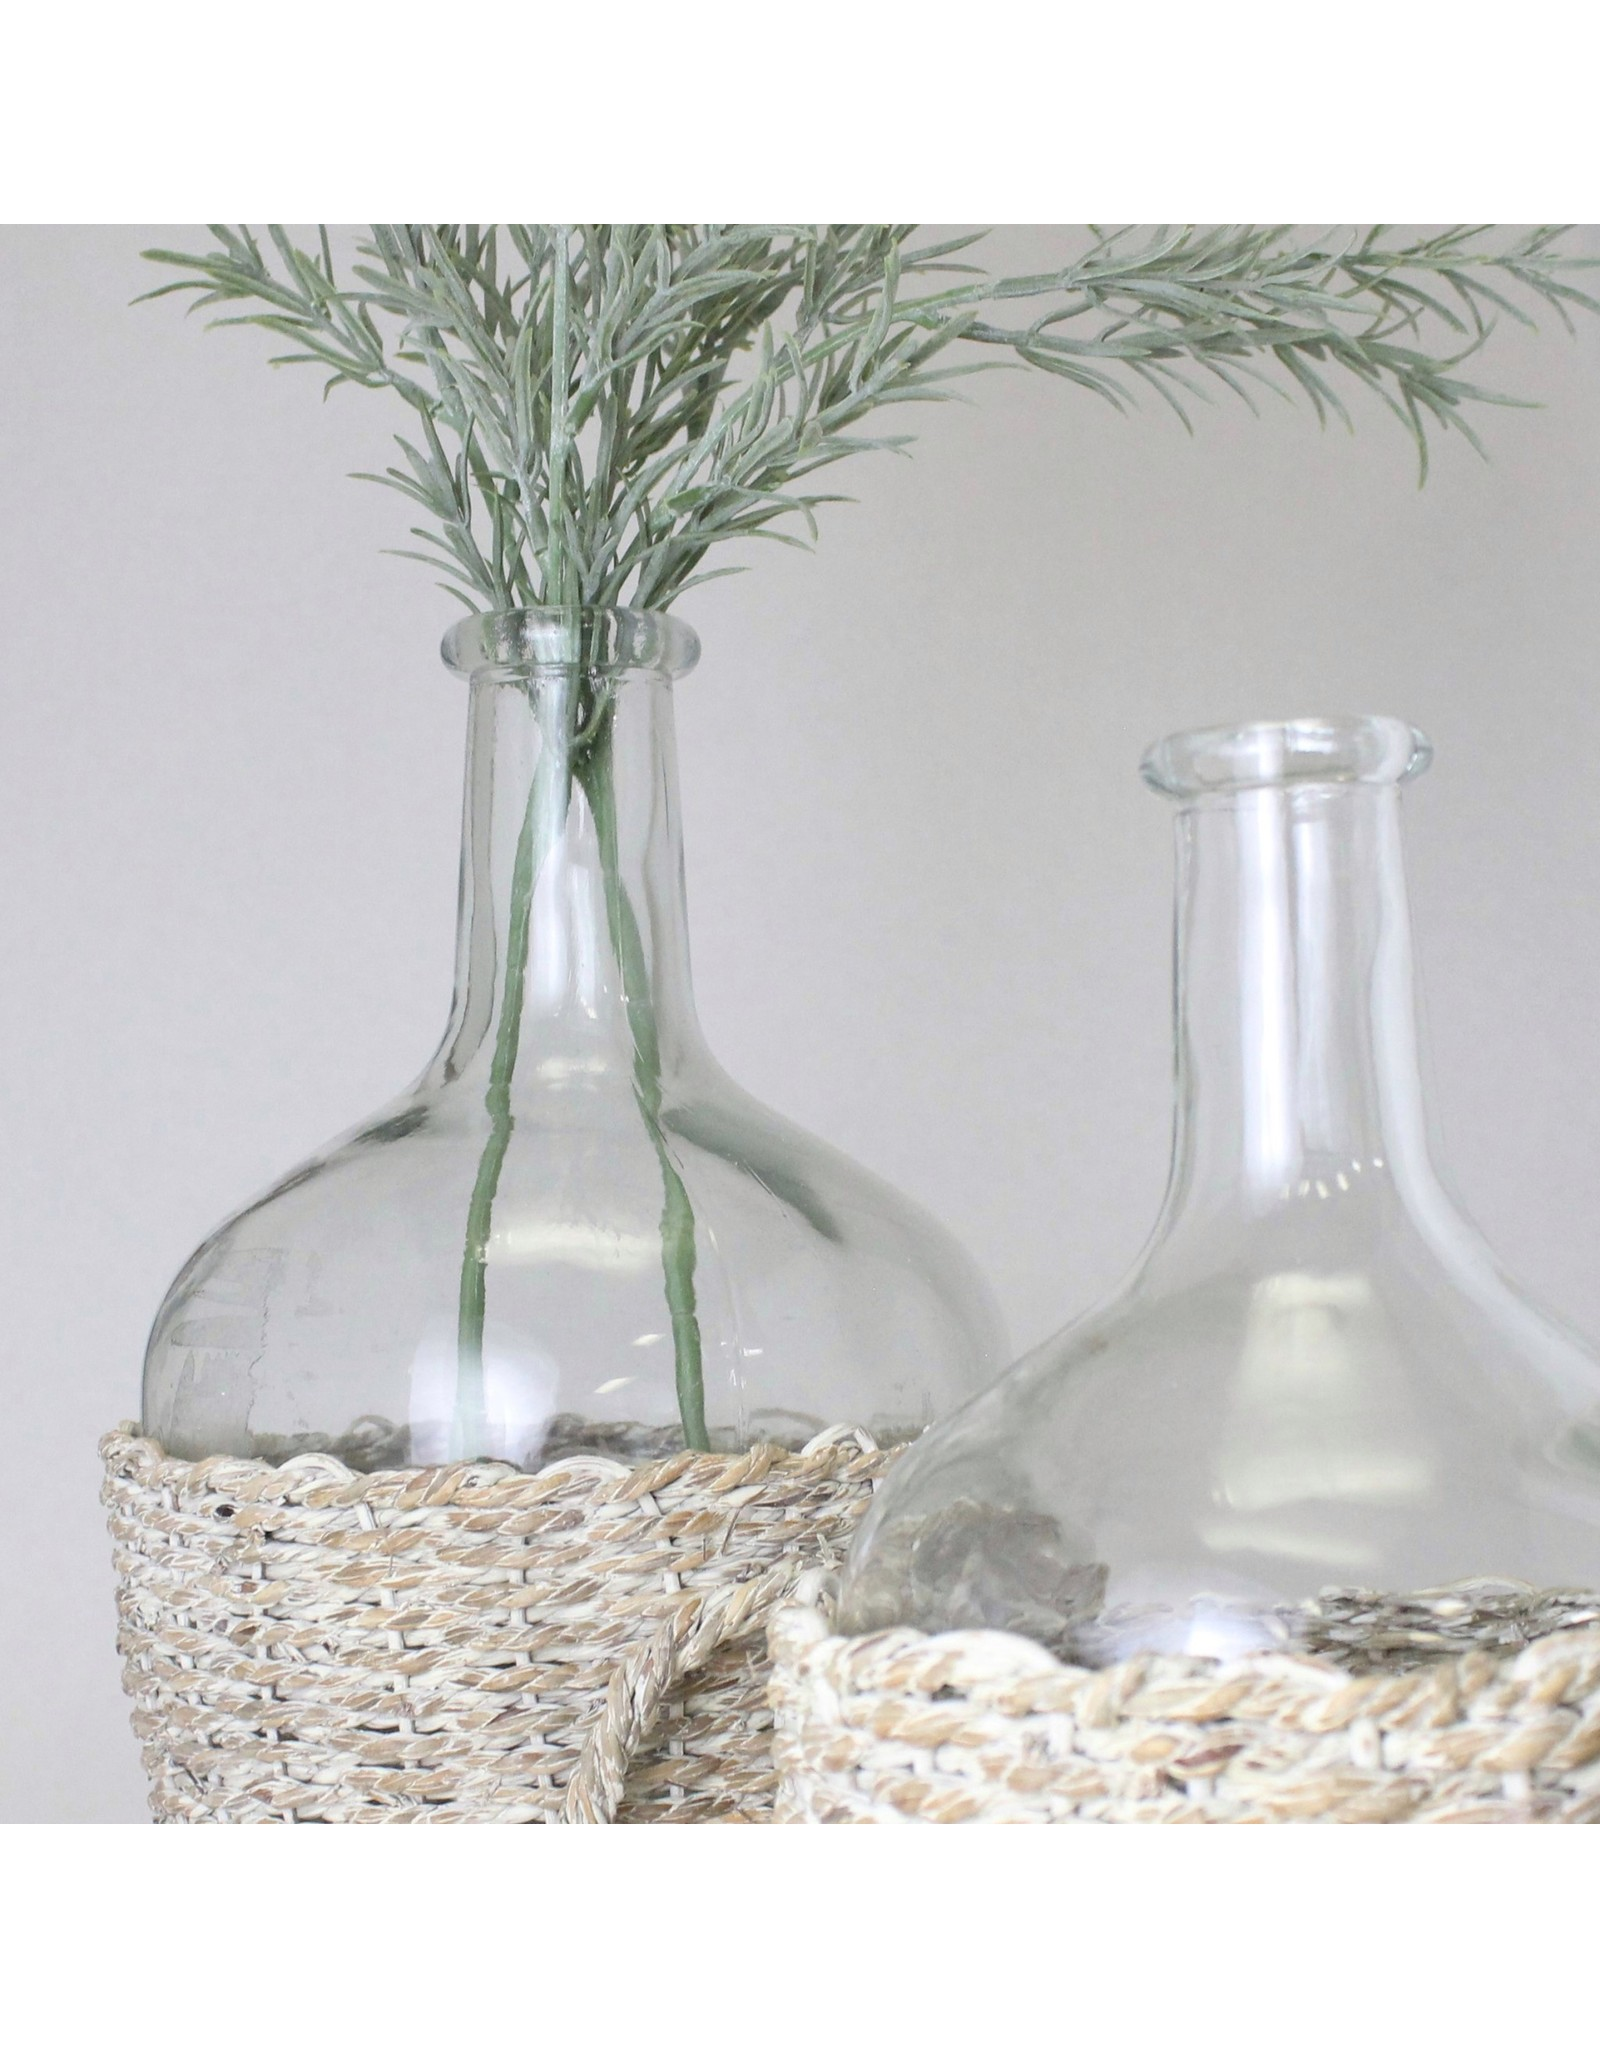 Glass Bottle with Woven Seagrass Basket, Large